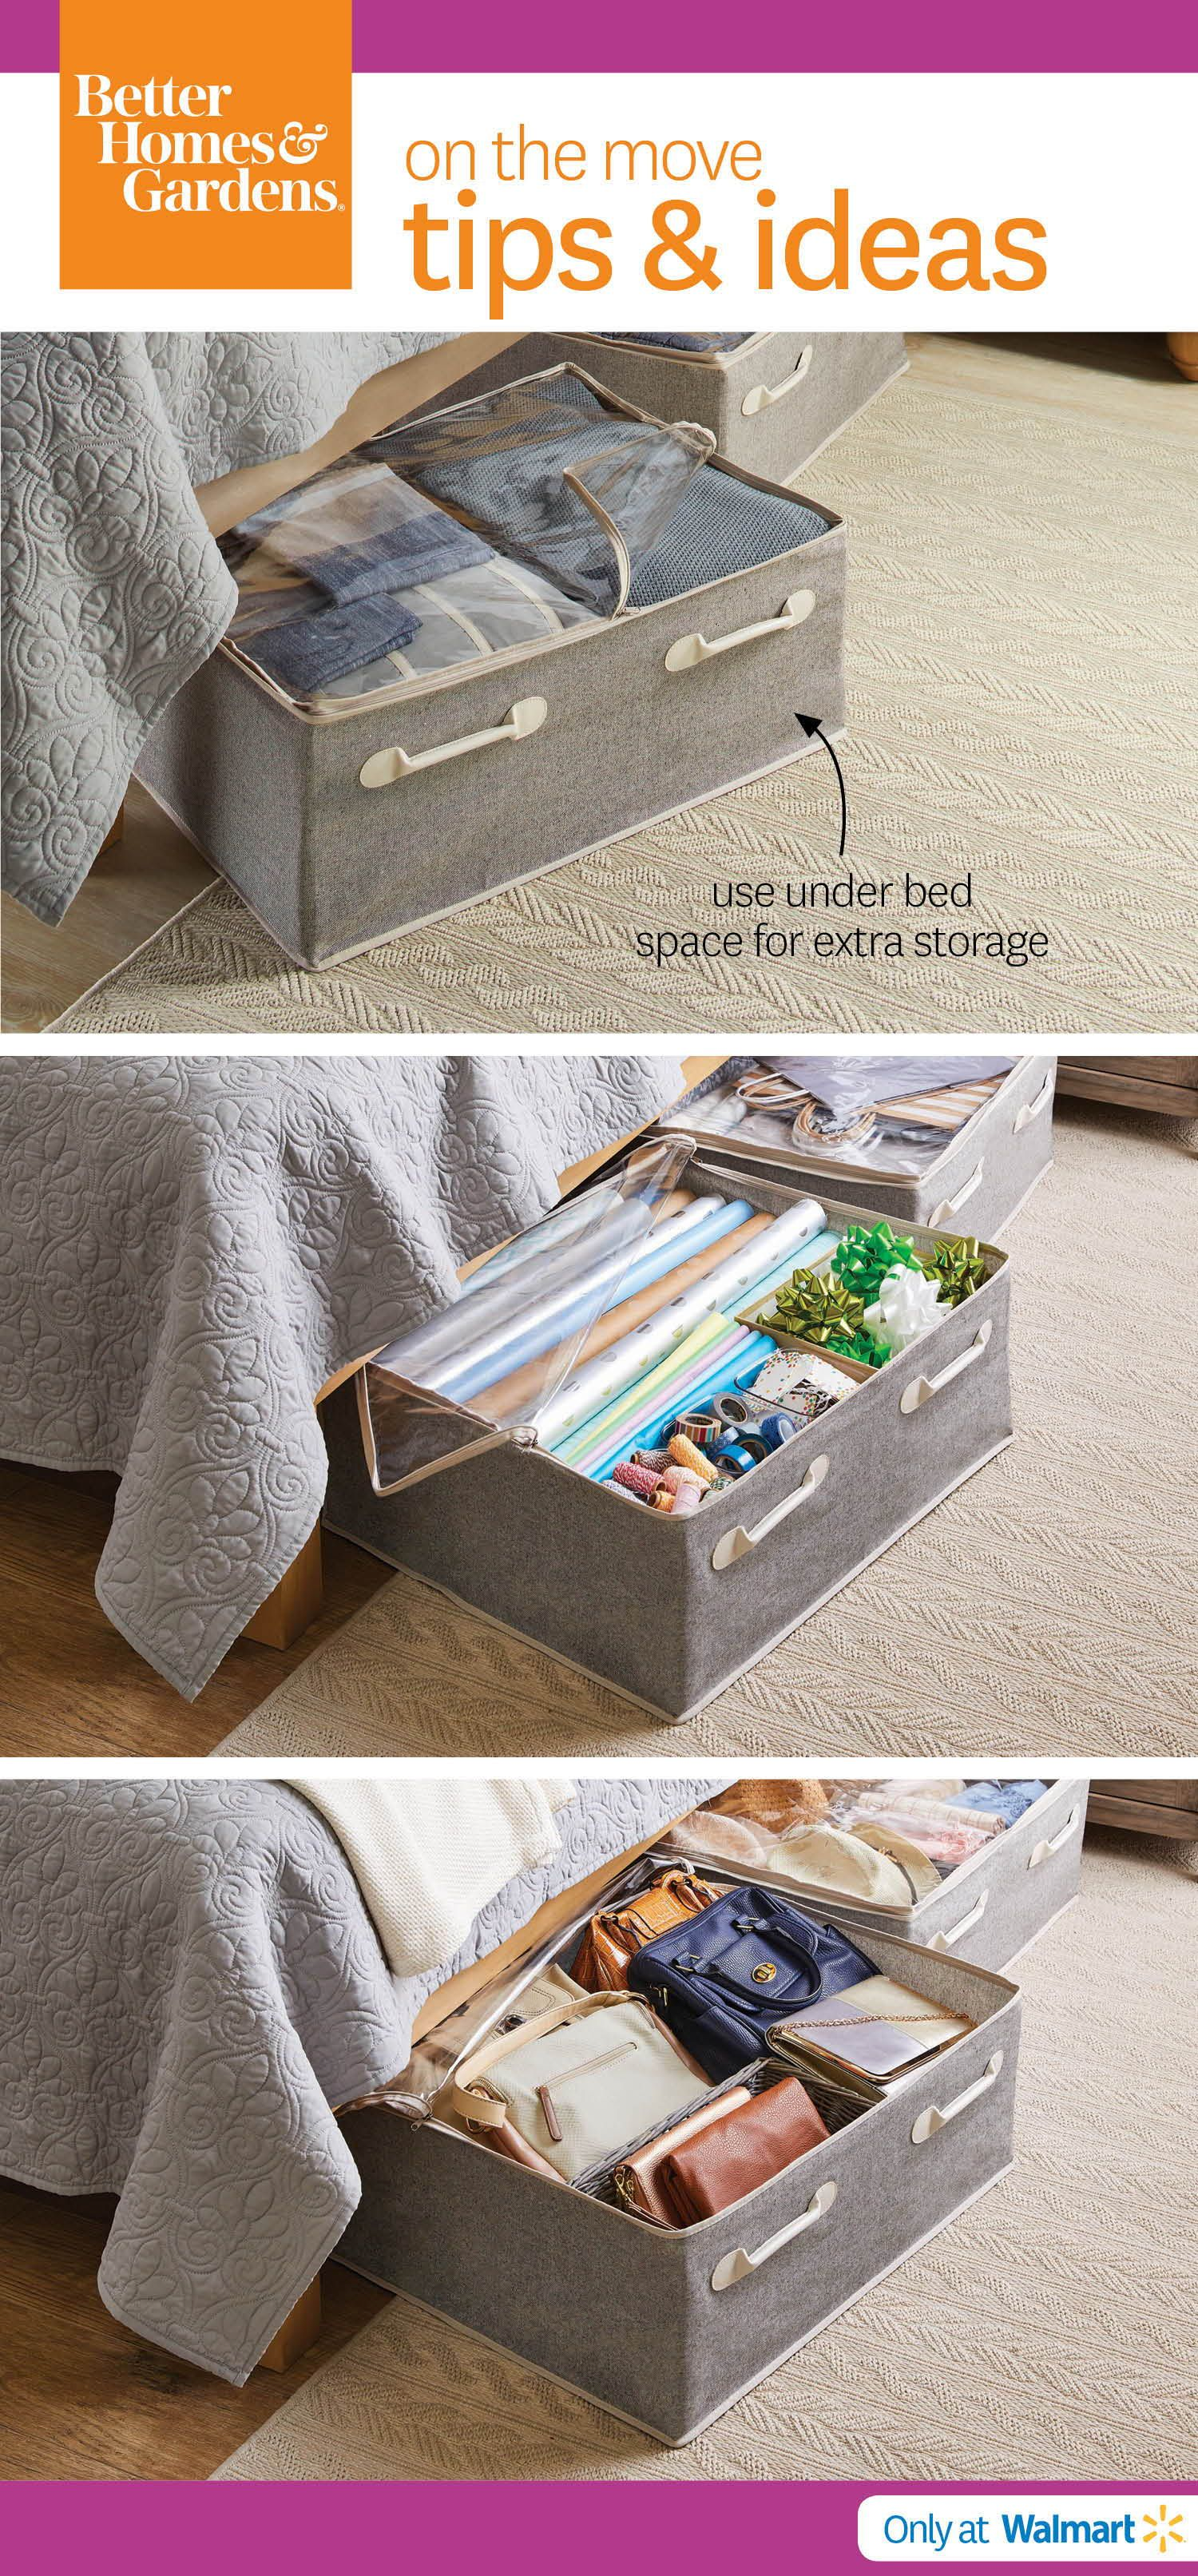 93b286edd Organizing under your bed gives you the extra room you wouldn't use  otherwise. Charleston Under Bed Storage Bags will keep all items neat &  tidy.